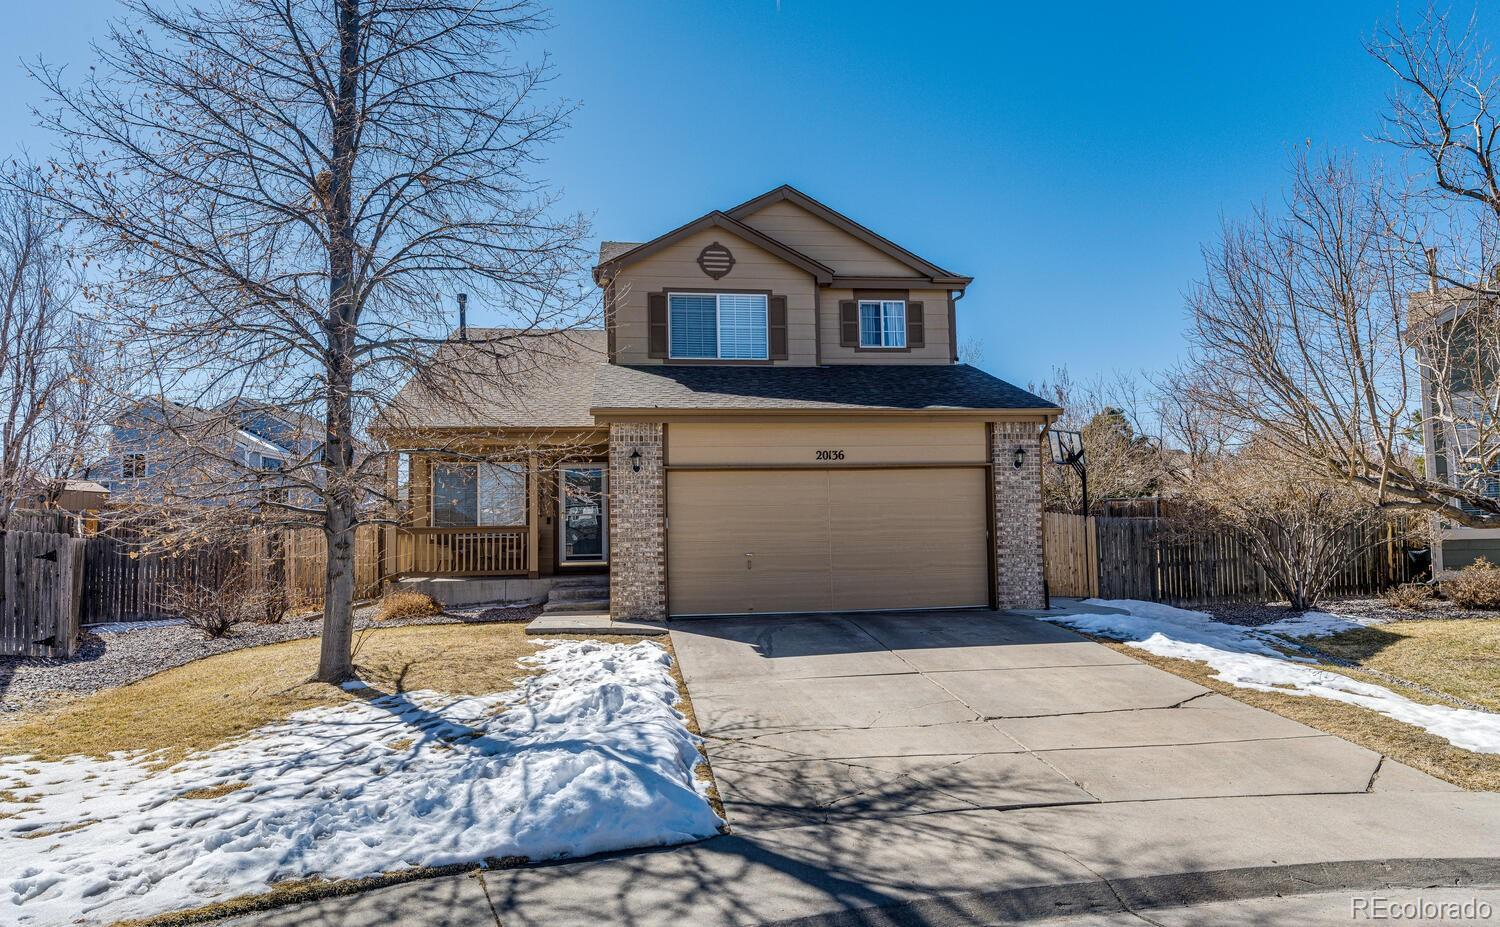 20136 E Williamette Lane, Centennial, CO 80015 - #: 8916839